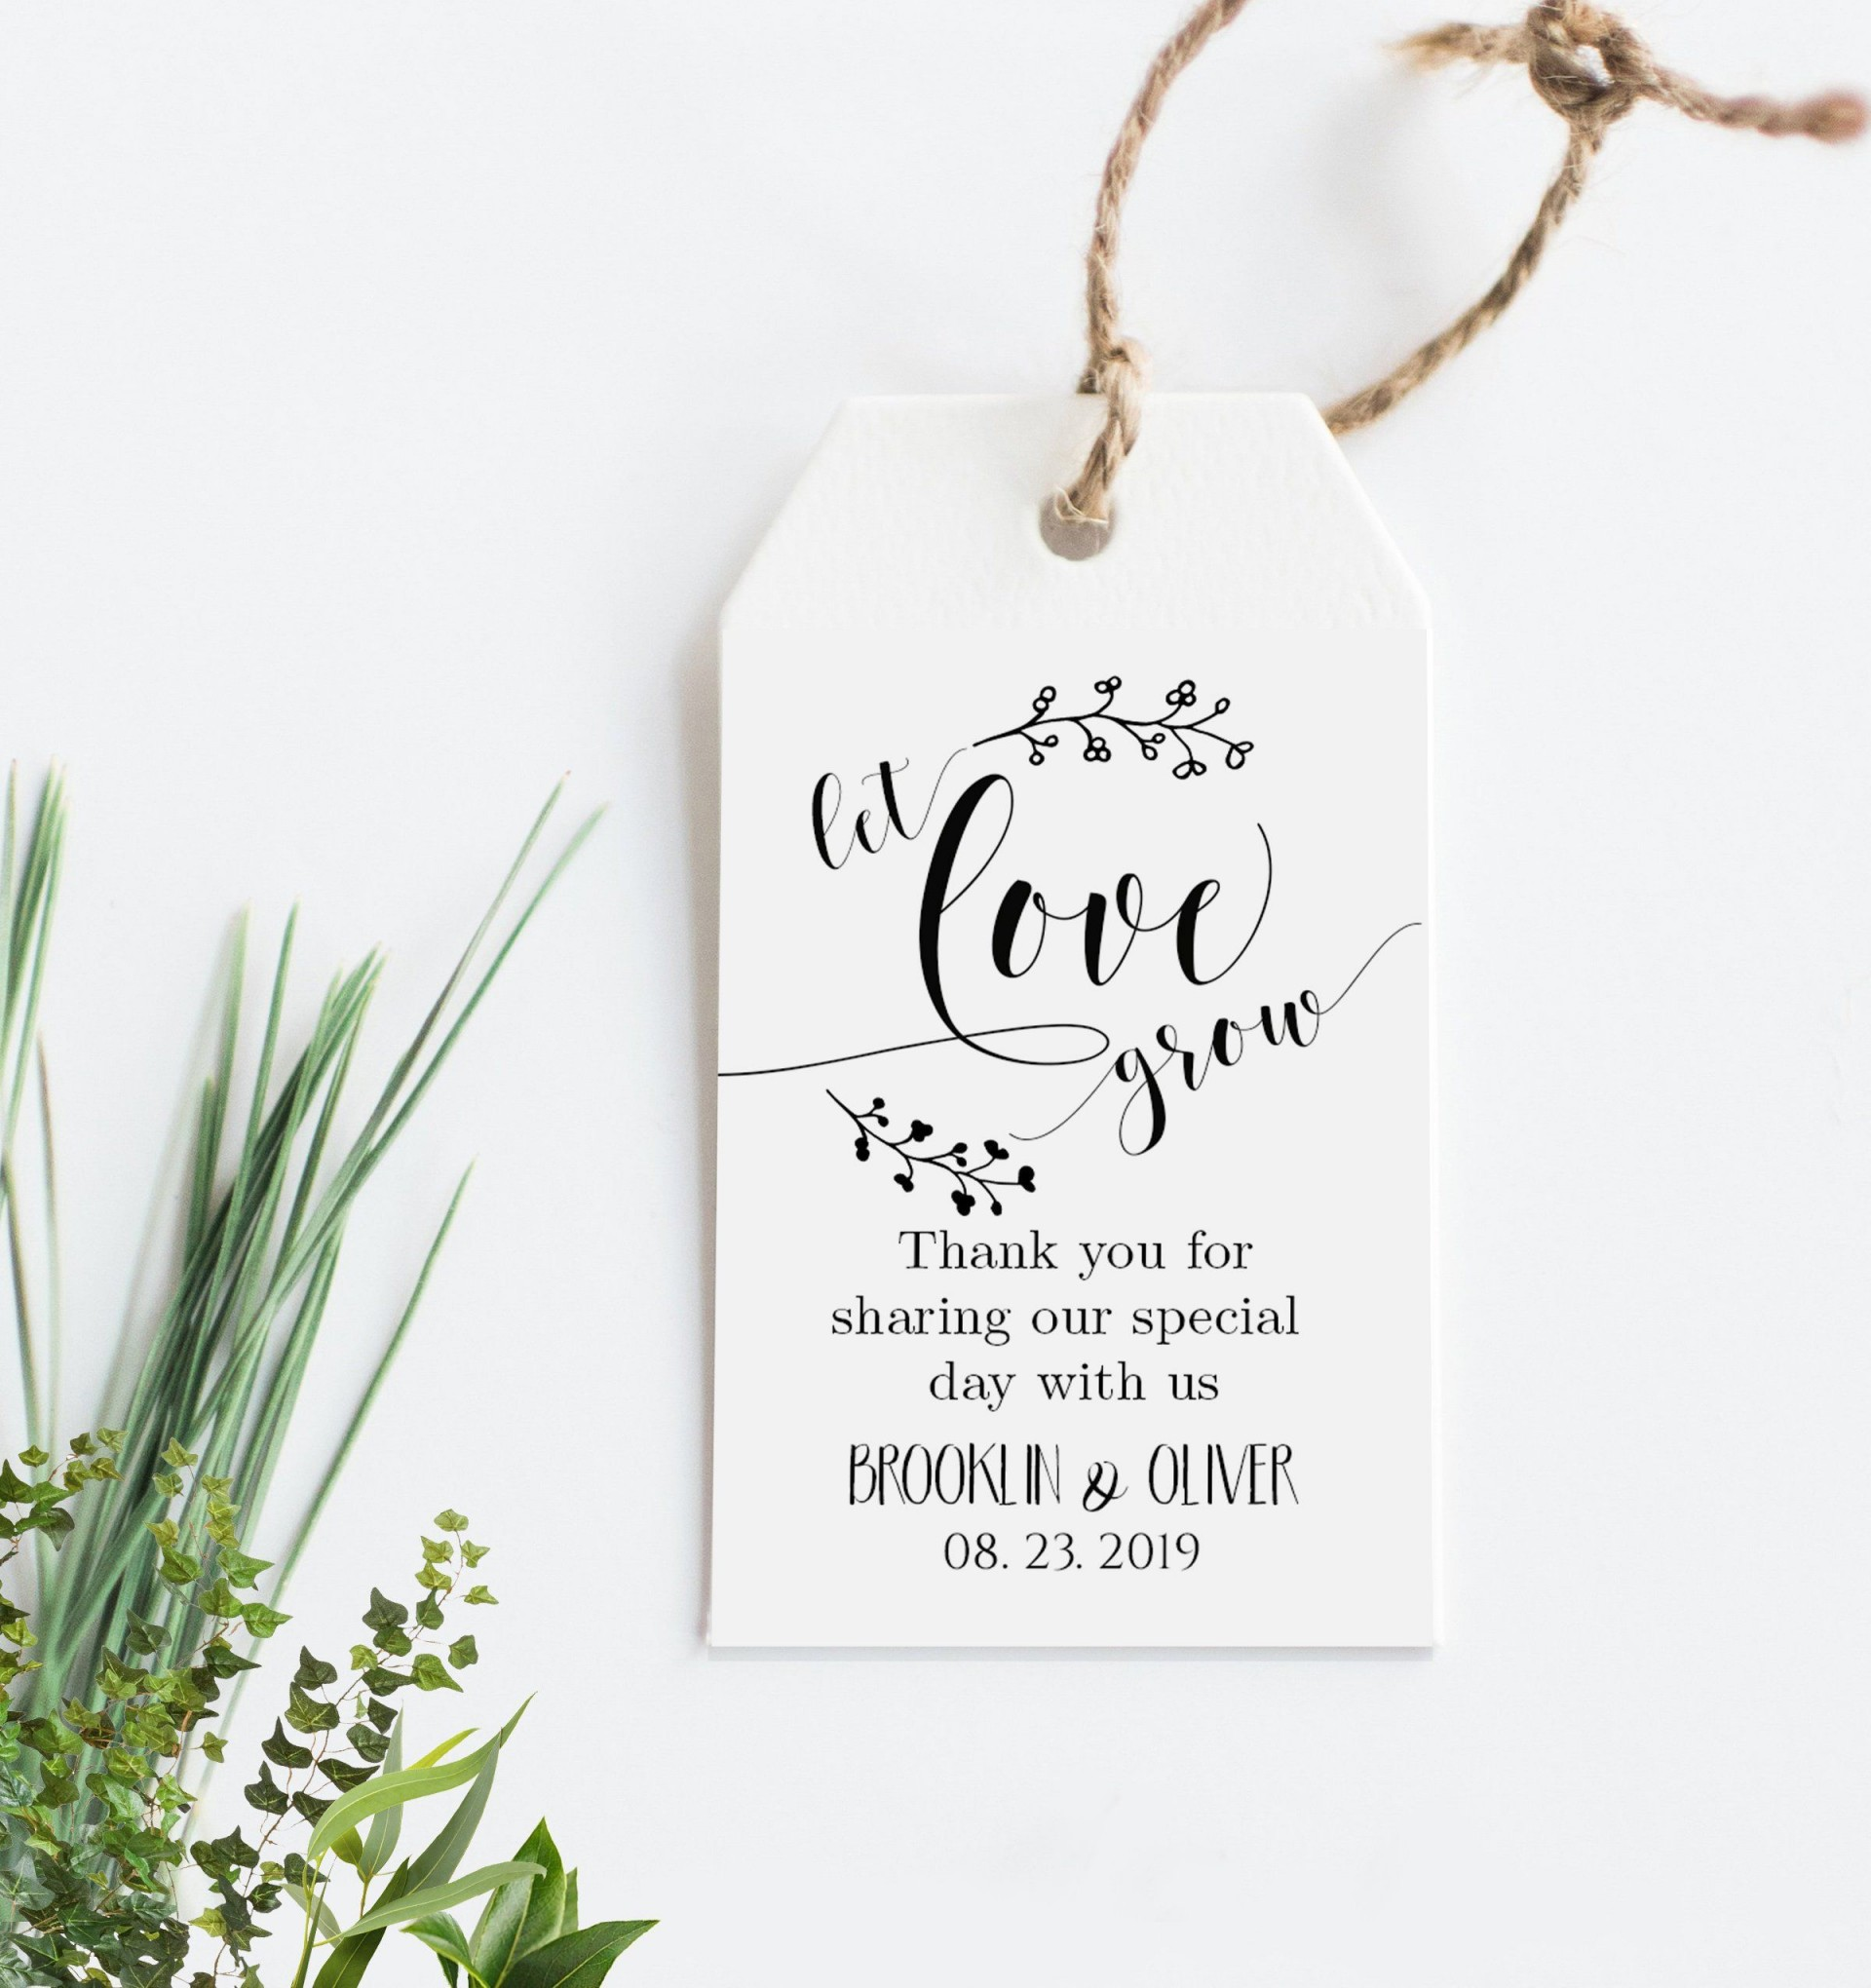 005 Surprising Wedding Favor Tag Template Example  Templates Editable Free Party Printable1920